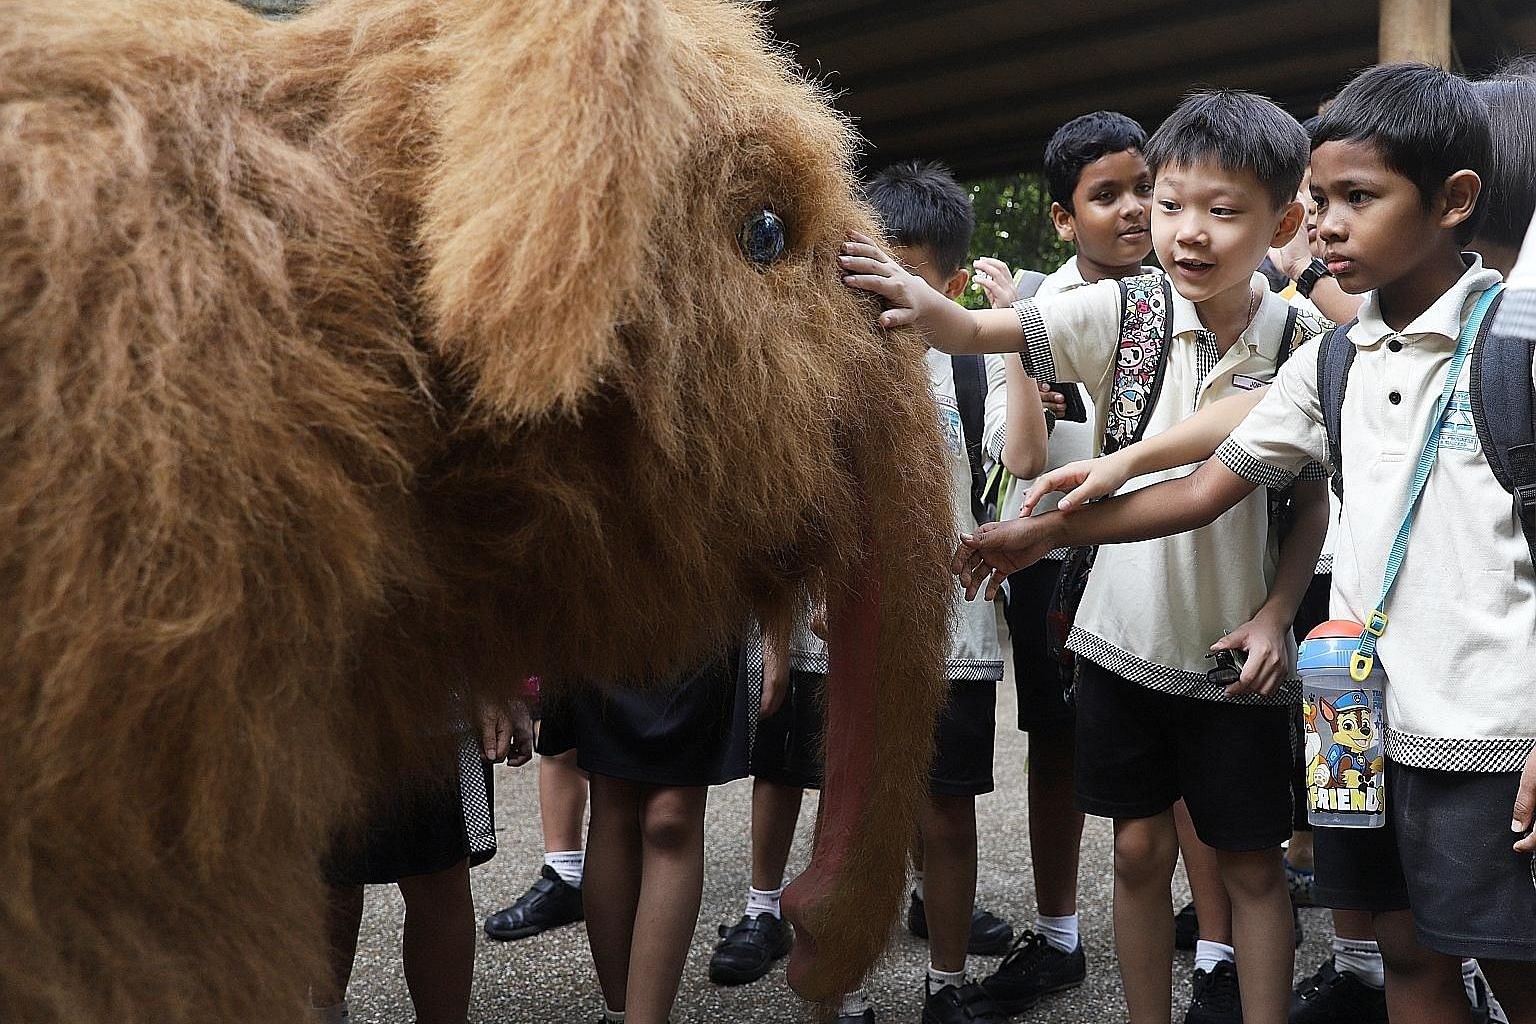 A Zhangde Primary School pupil feeding an elephant during the Gentle Giants Wildlife Tour at the Singapore Zoo last Wednesday. In line with its conservation efforts, the zoo in recent years introduced new ways of caring for its elephants. Pupils from